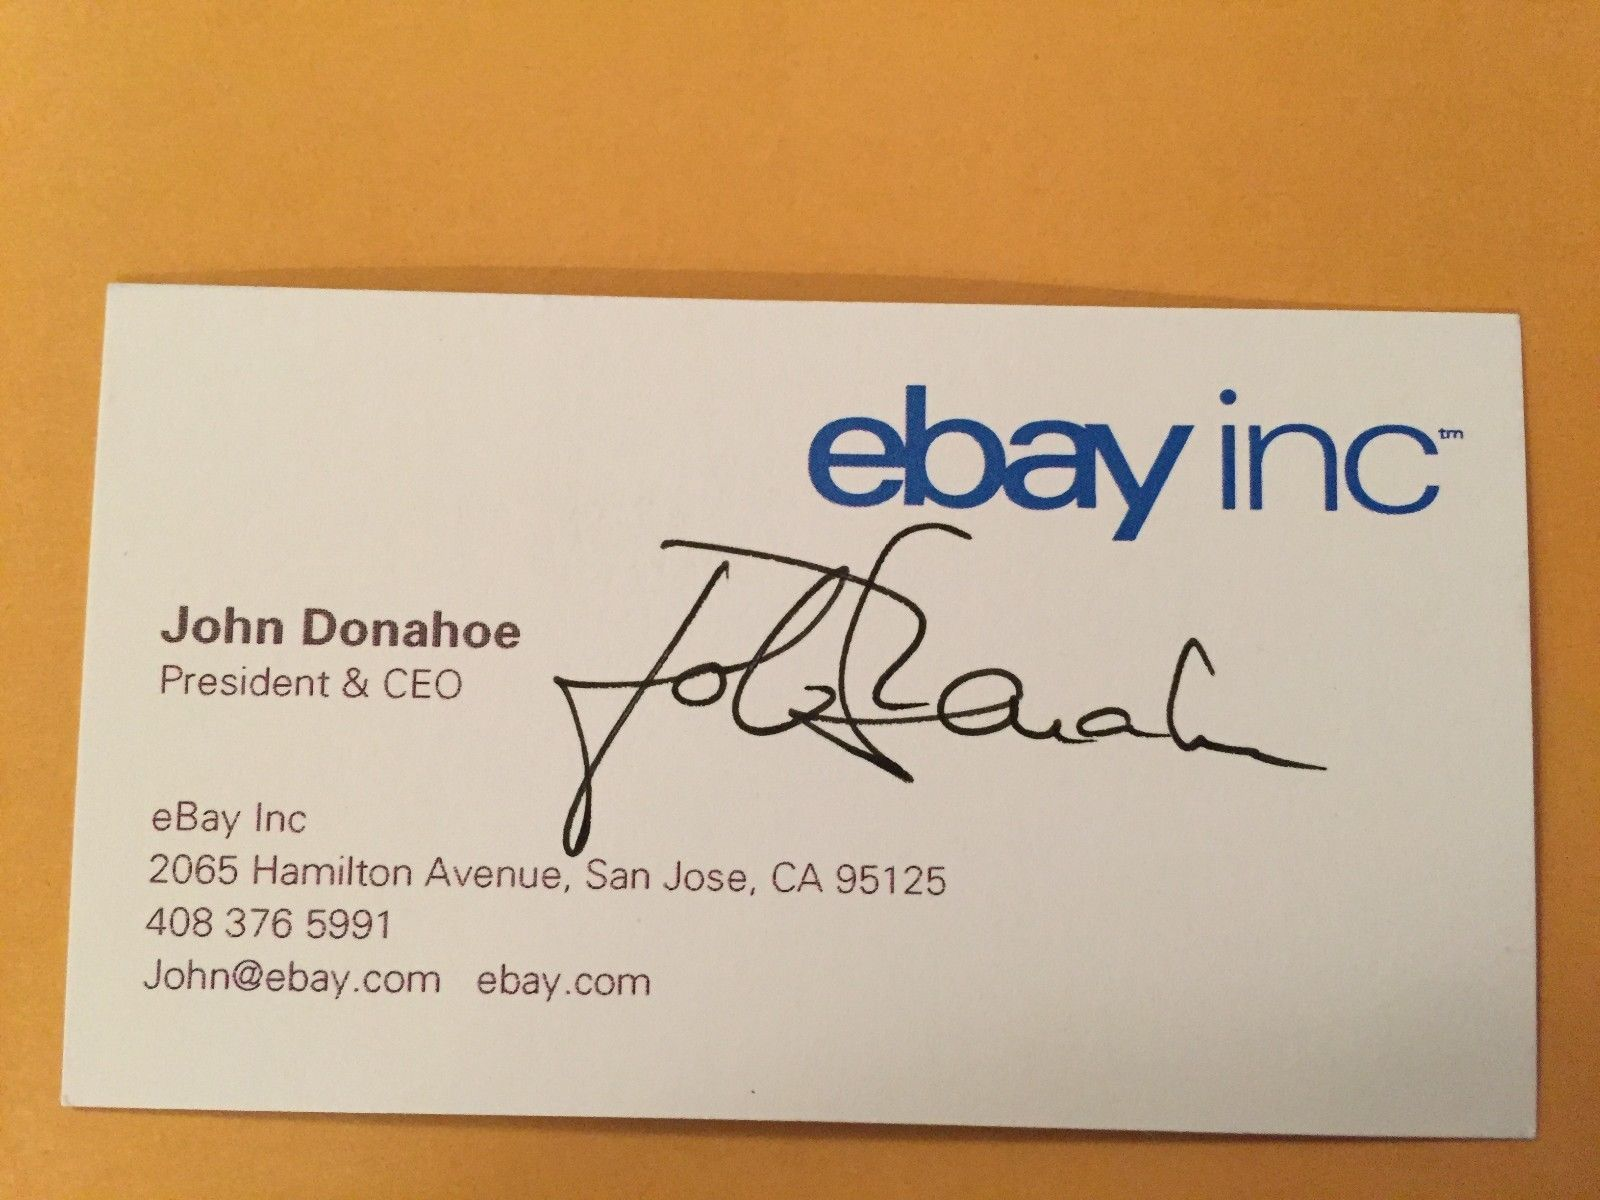 John donahoe autograph ebay president ceo business card signed john donahoe autograph ebay president ceo business card signed colourmoves